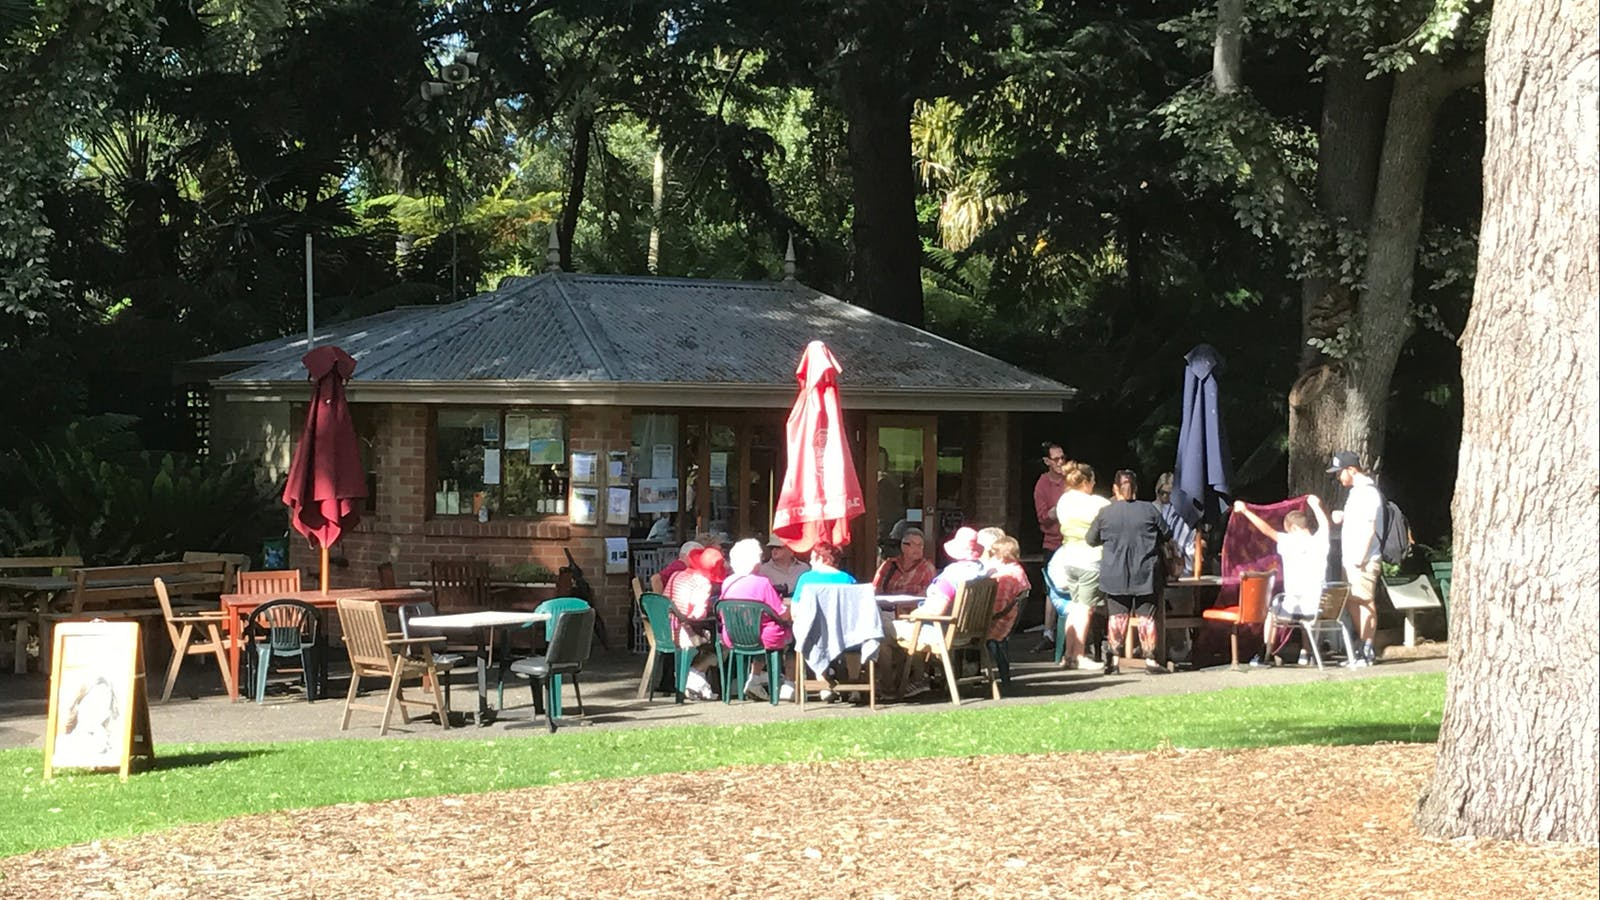 Geelong Botanical Gardens Tea House